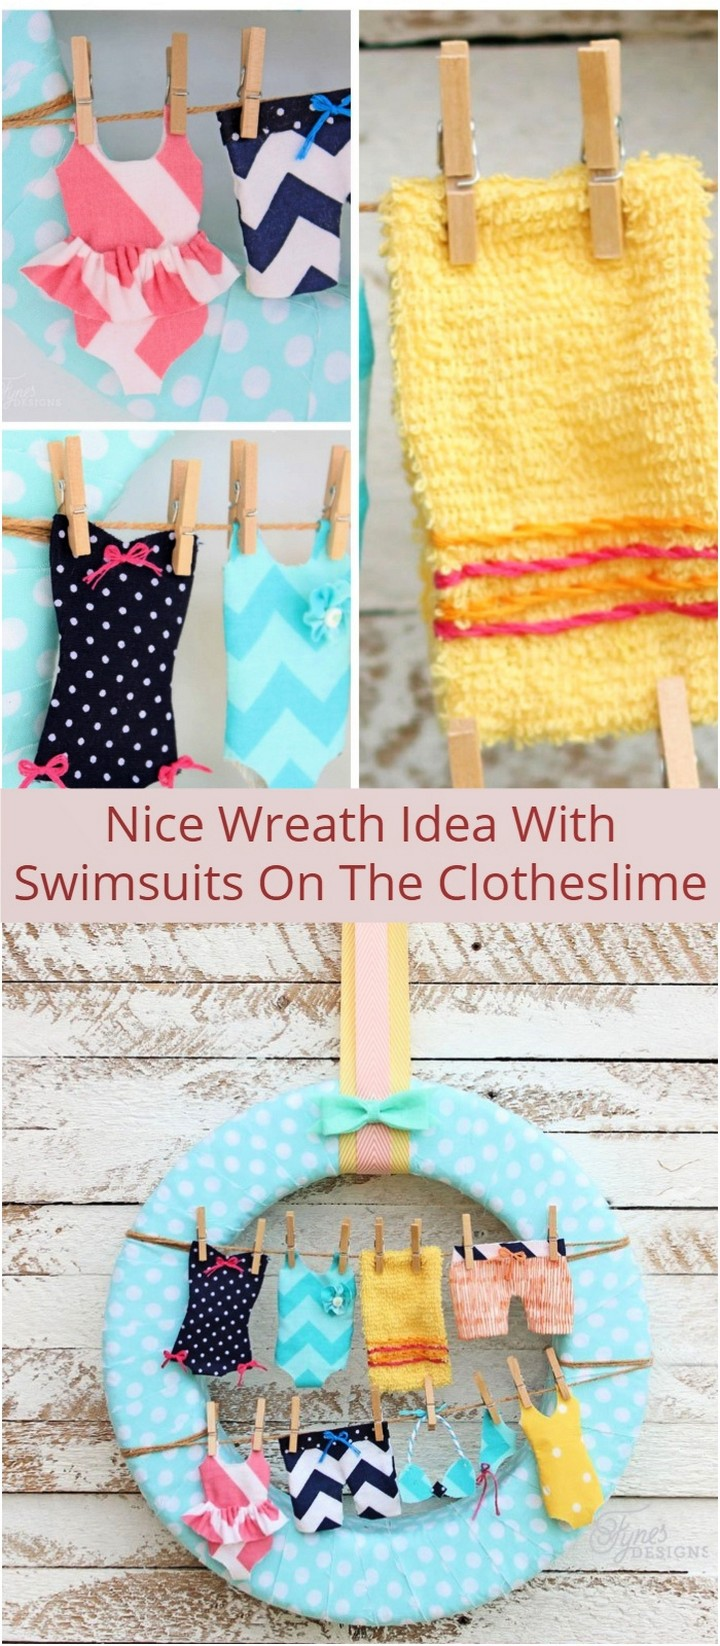 Nice Wreath Idea With Swimsuits On The Clotheslime